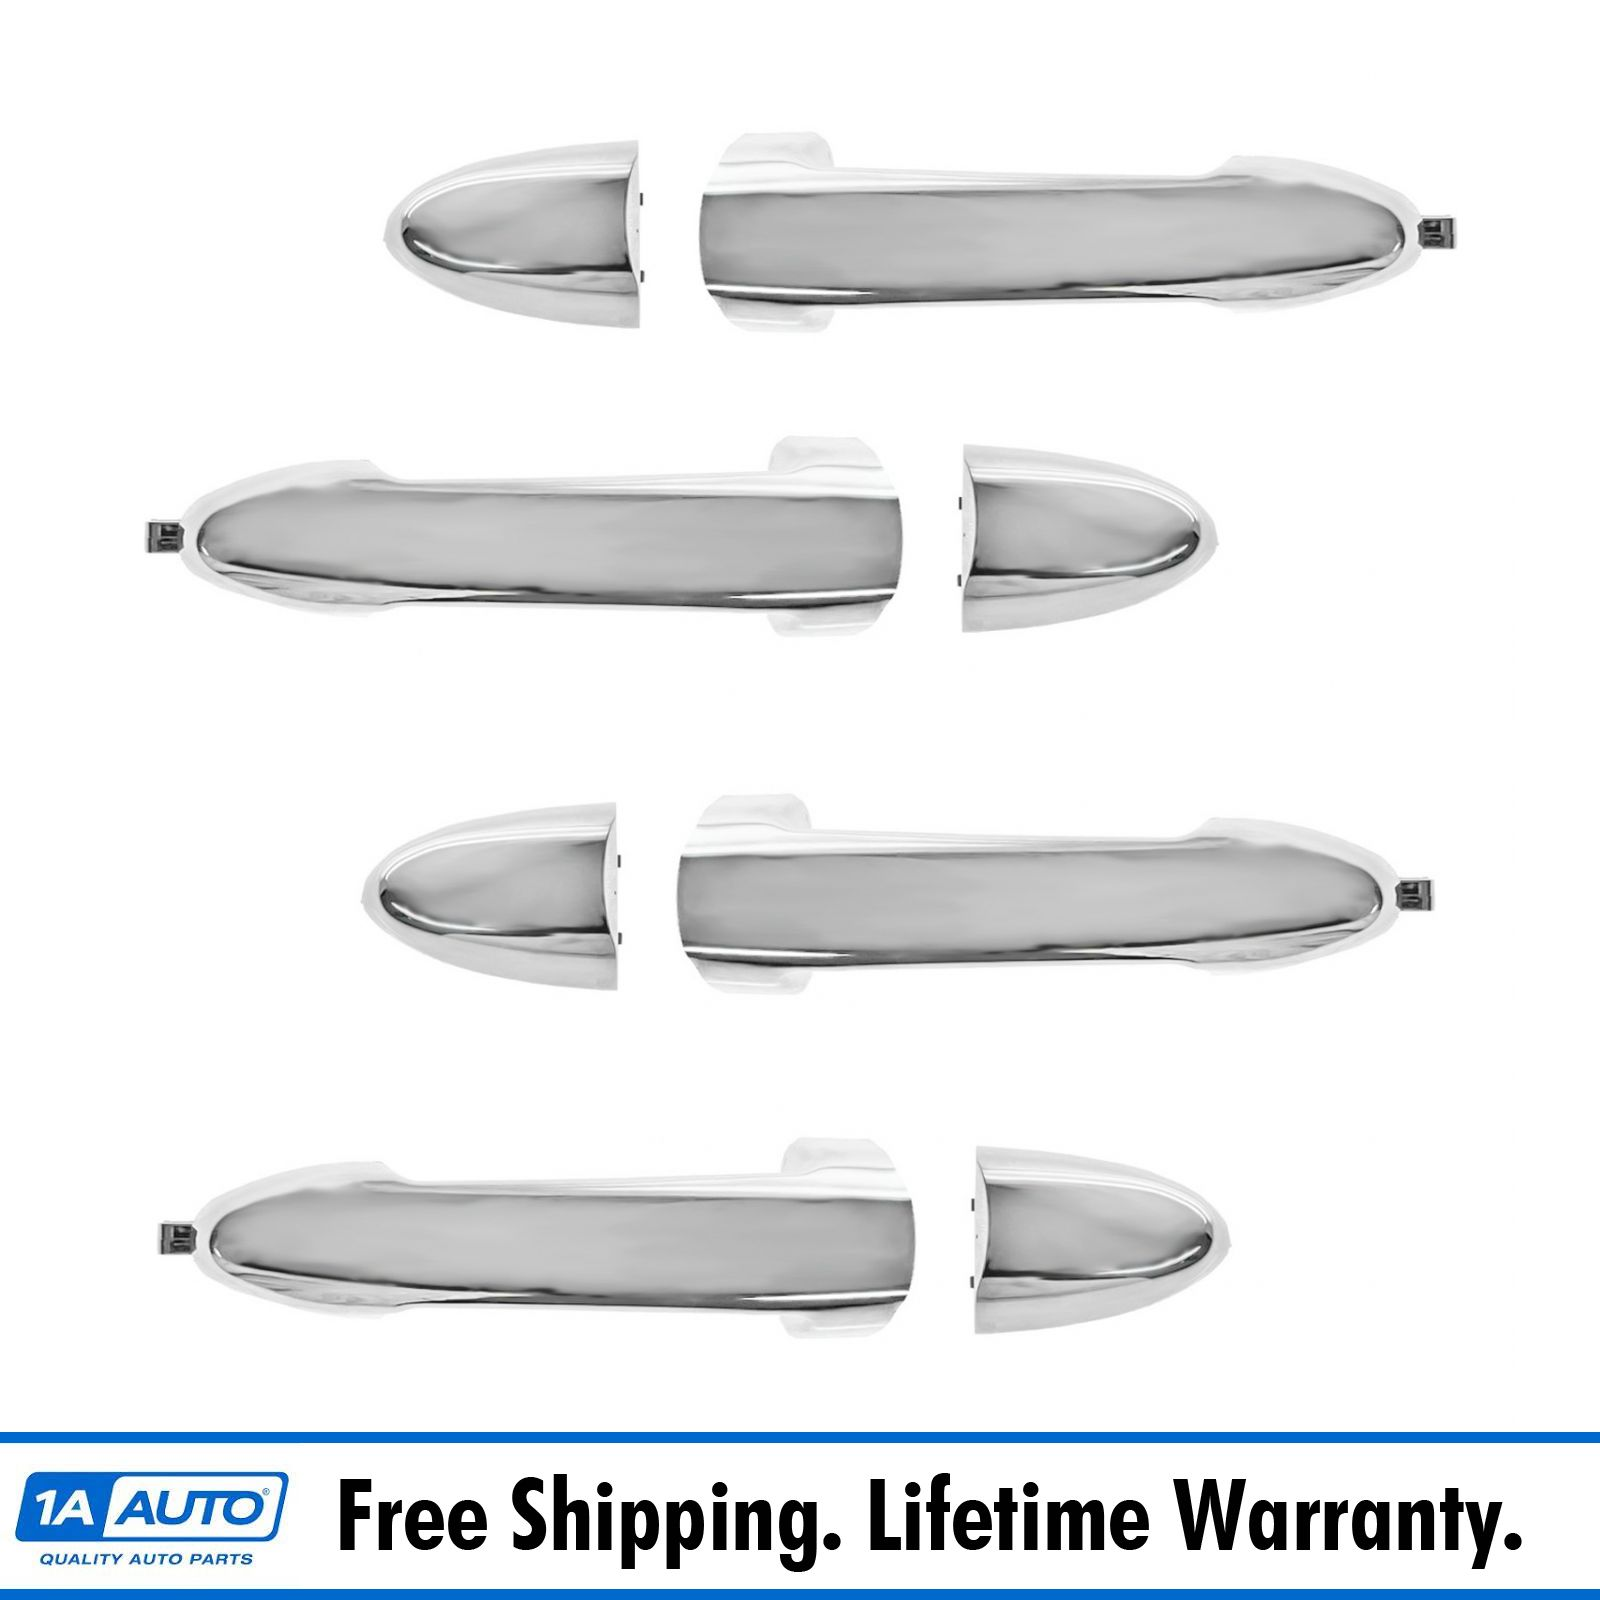 Door Handle All Chrome Outer Outside Kit Set of 4 for Escape Mariner Hybrid NEW